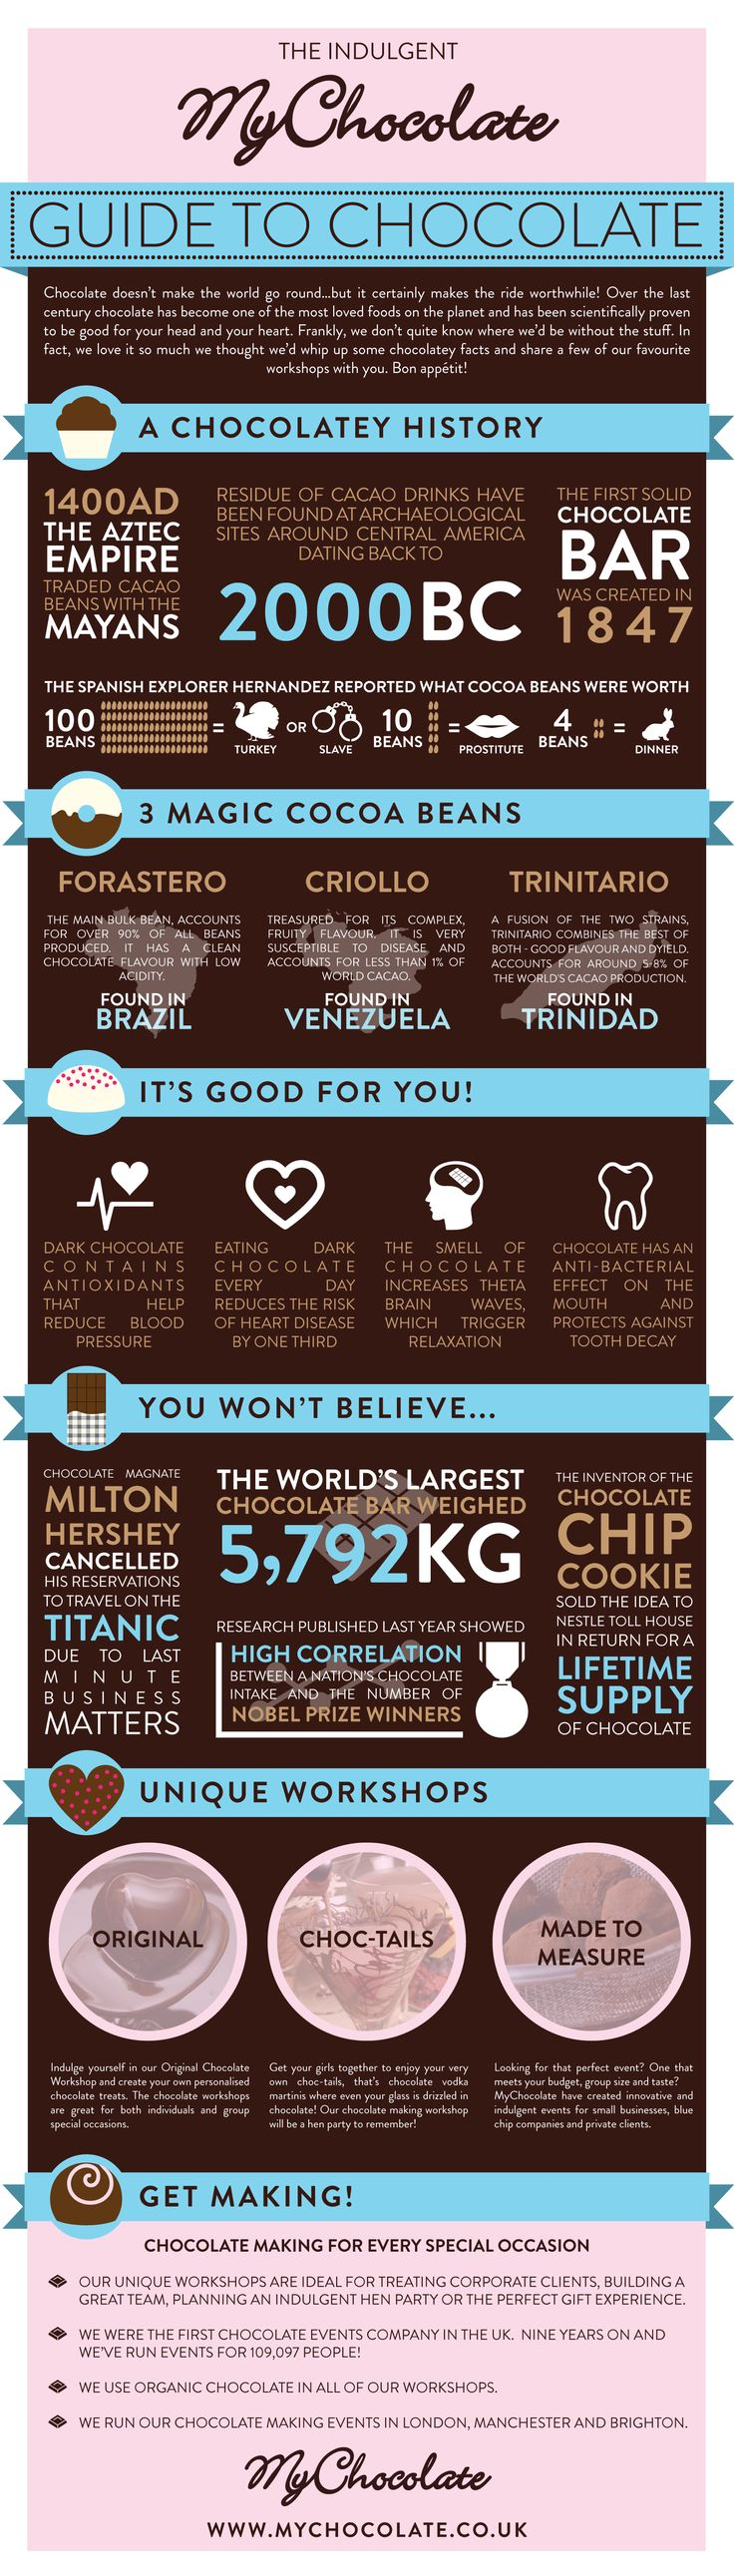 A Guide to Chocolate Infographic